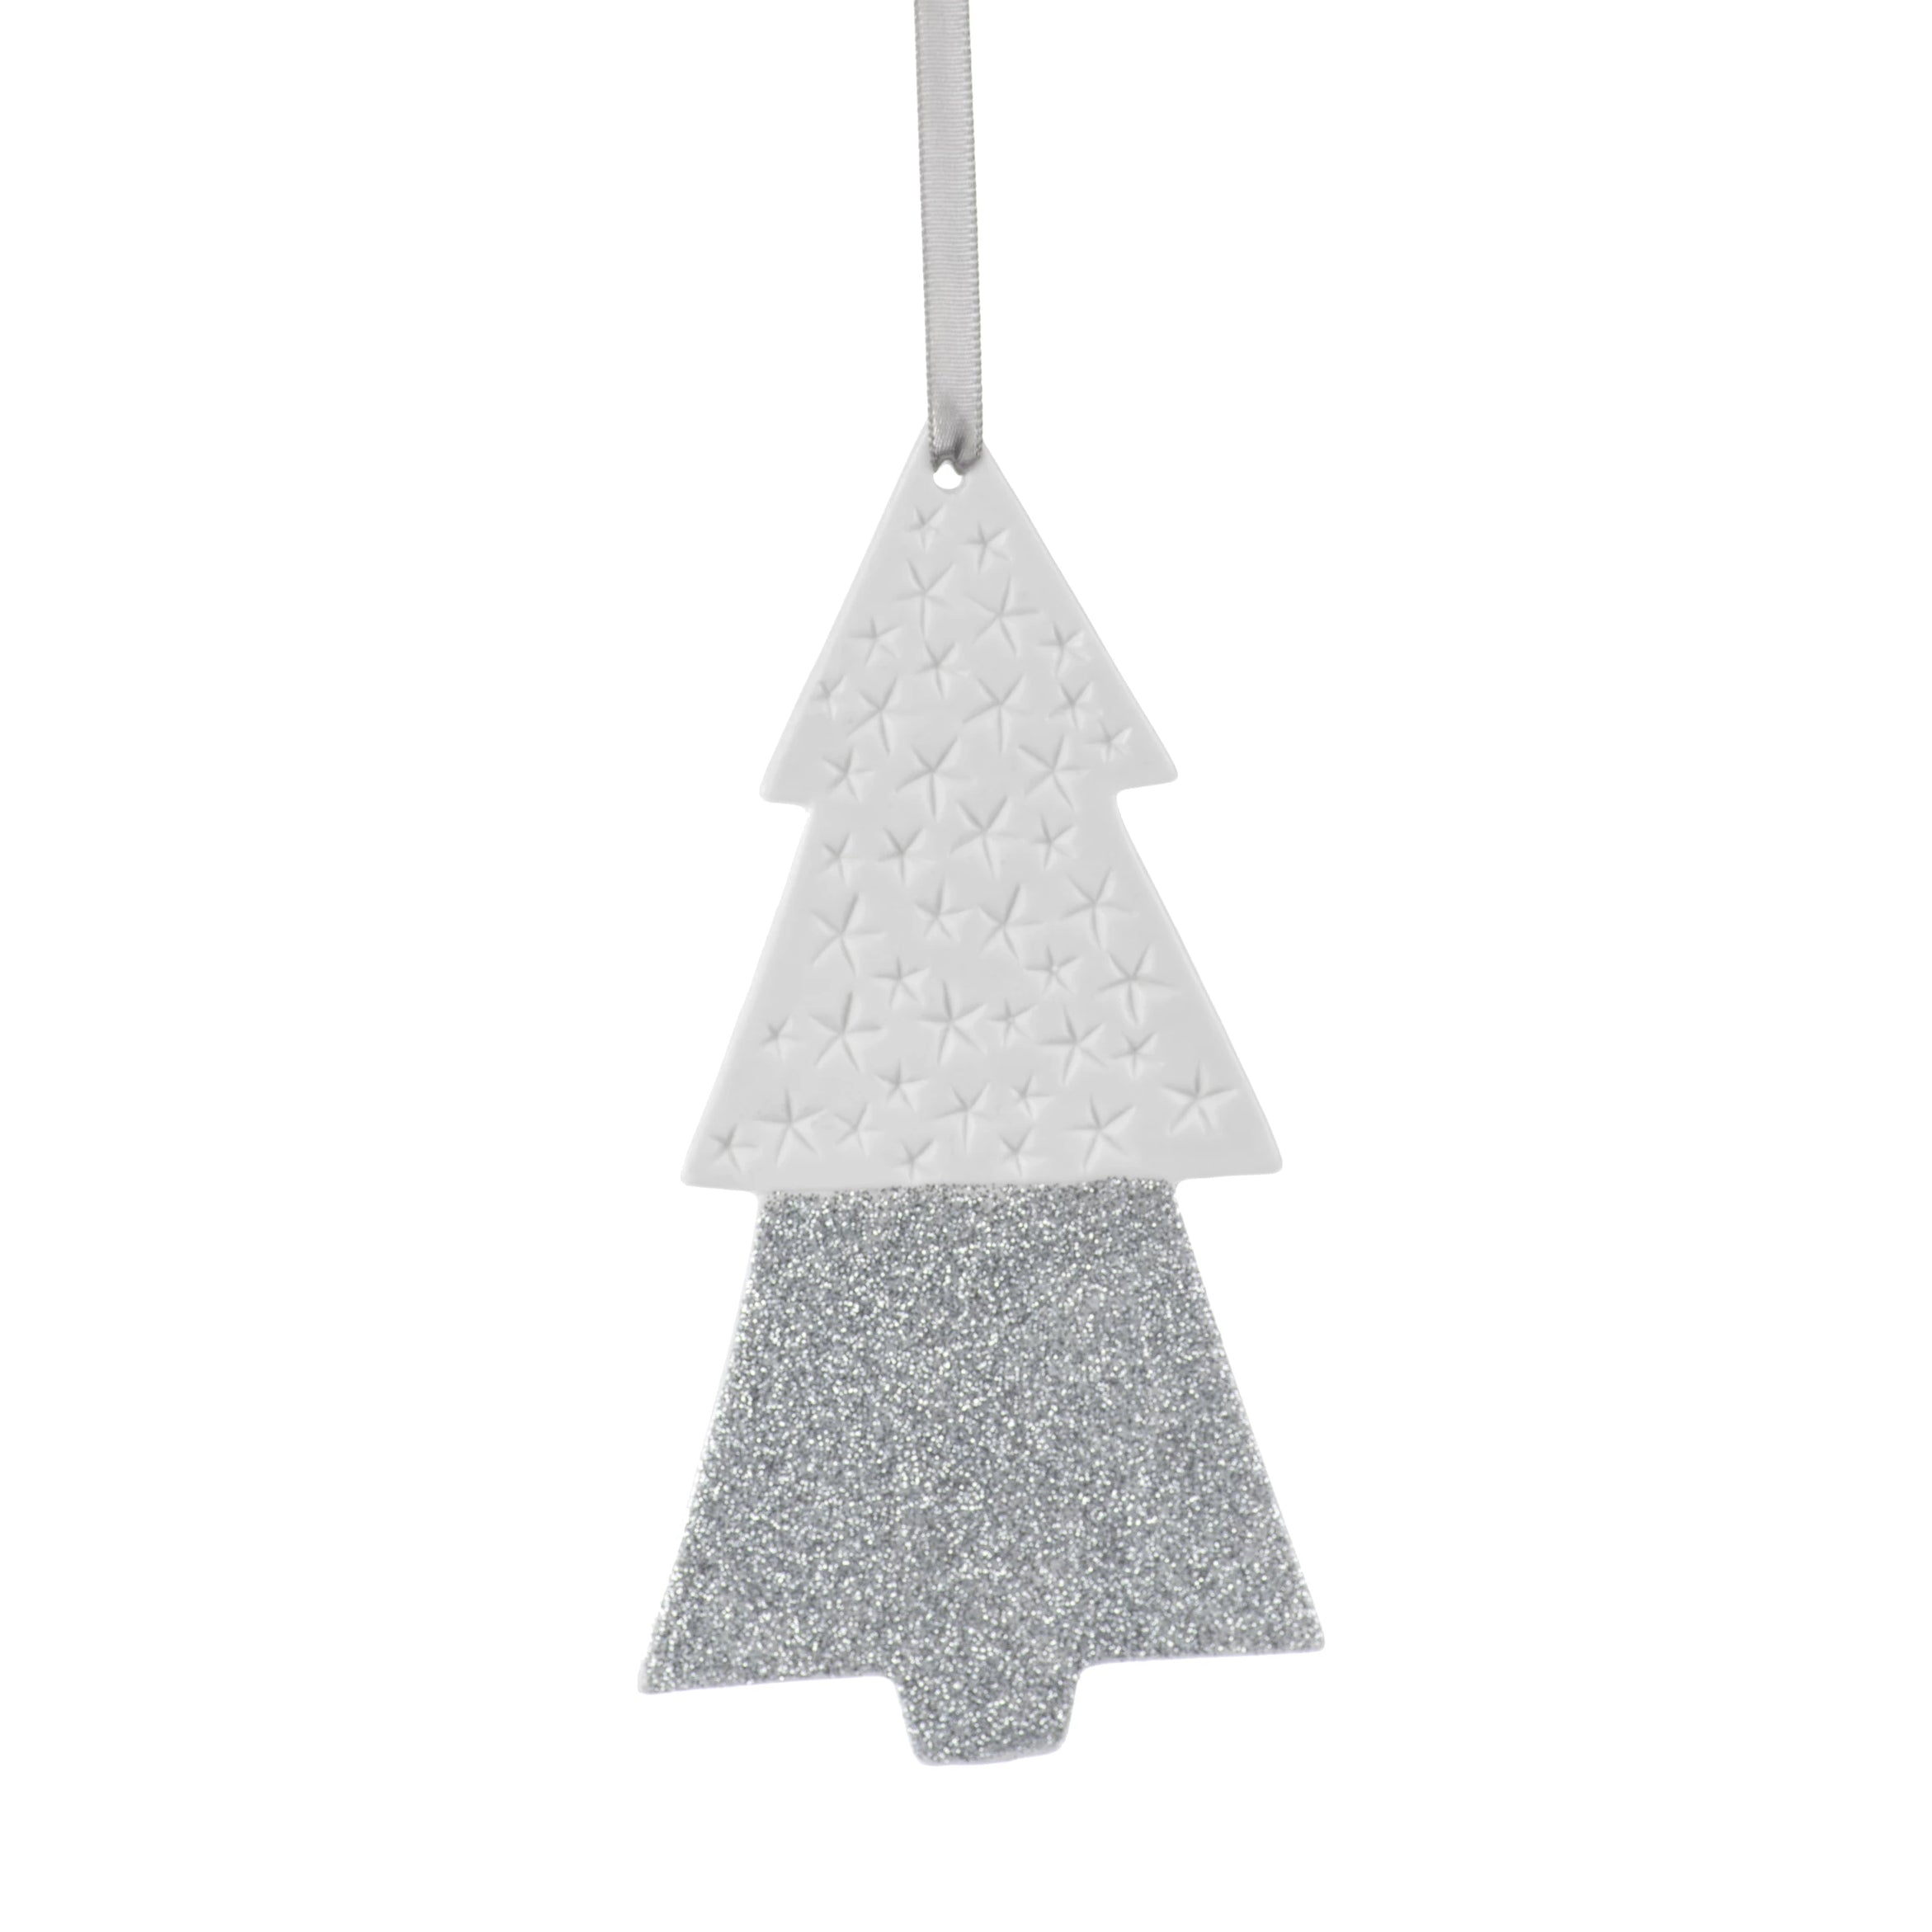 Two-Tone Tree Ornaments - Silver - CARLYLE AVENUE